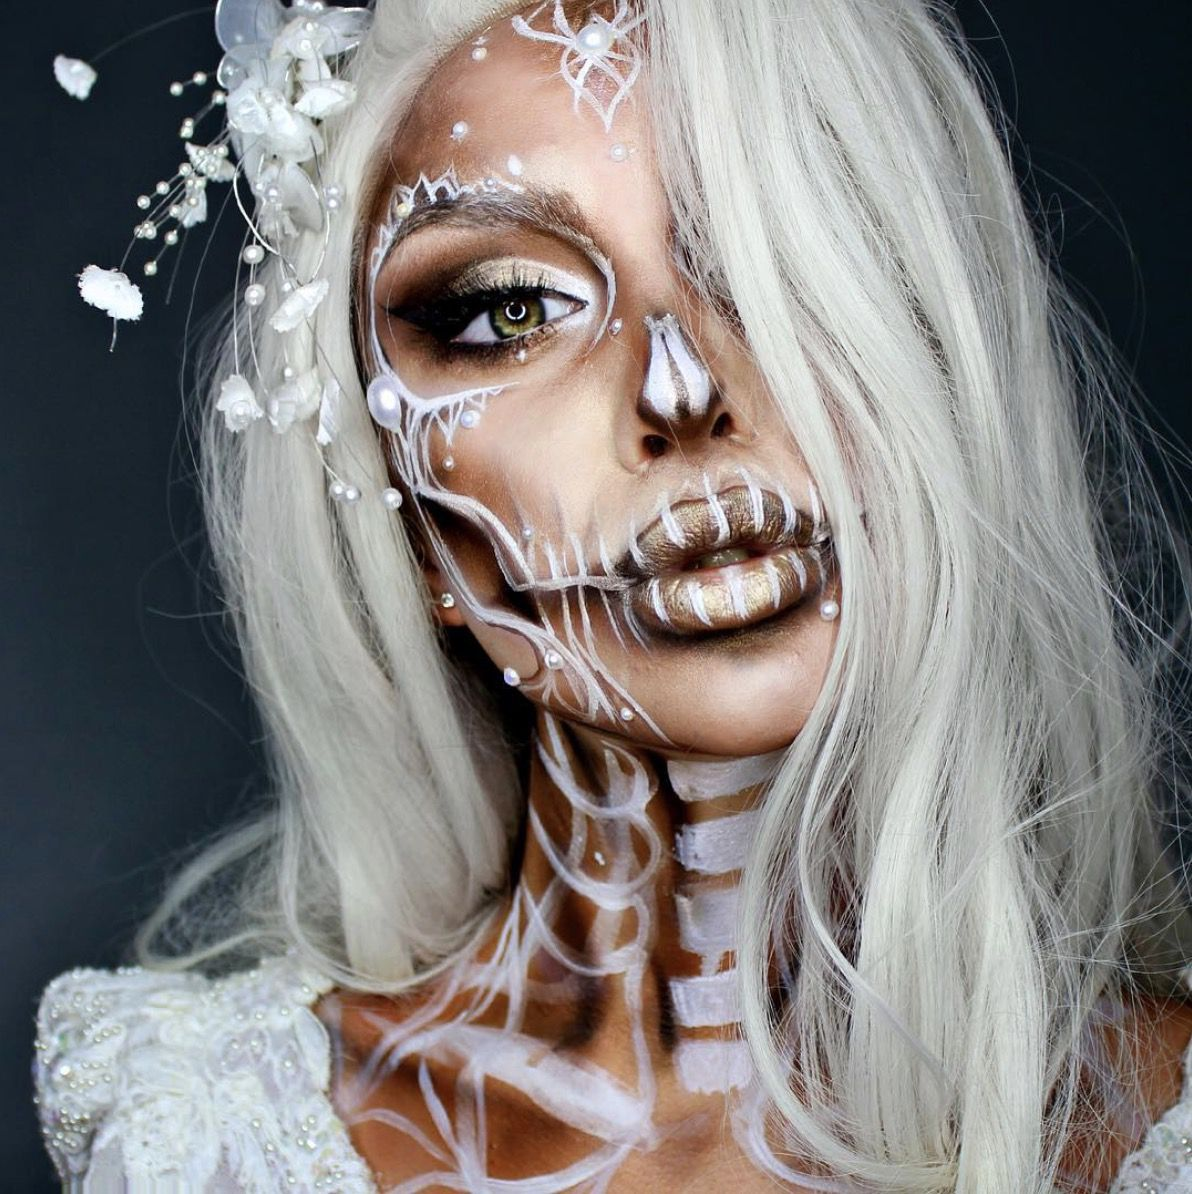 45 Jaw-Dropping Halloween Makeup Ideas (That Are Still Pretty)